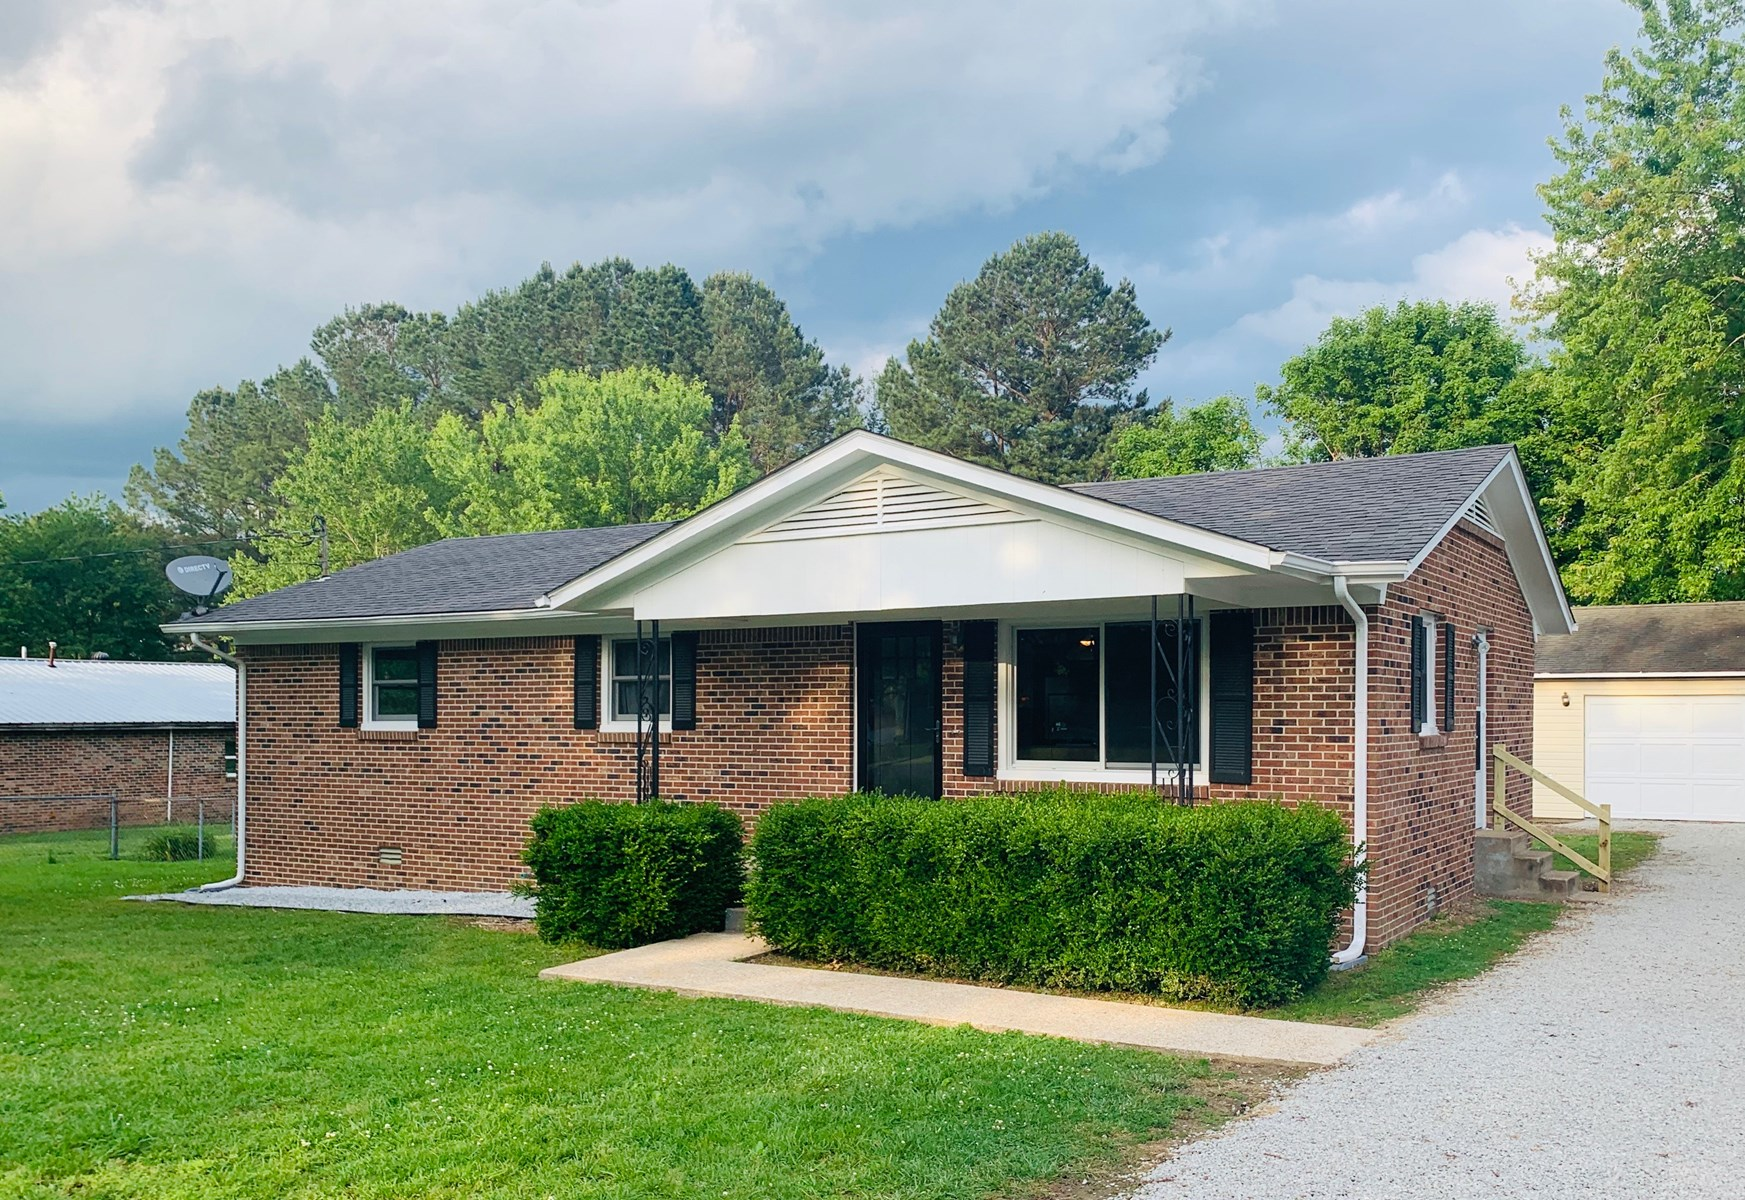 Home for Sale in Hohenwald, Tennessee